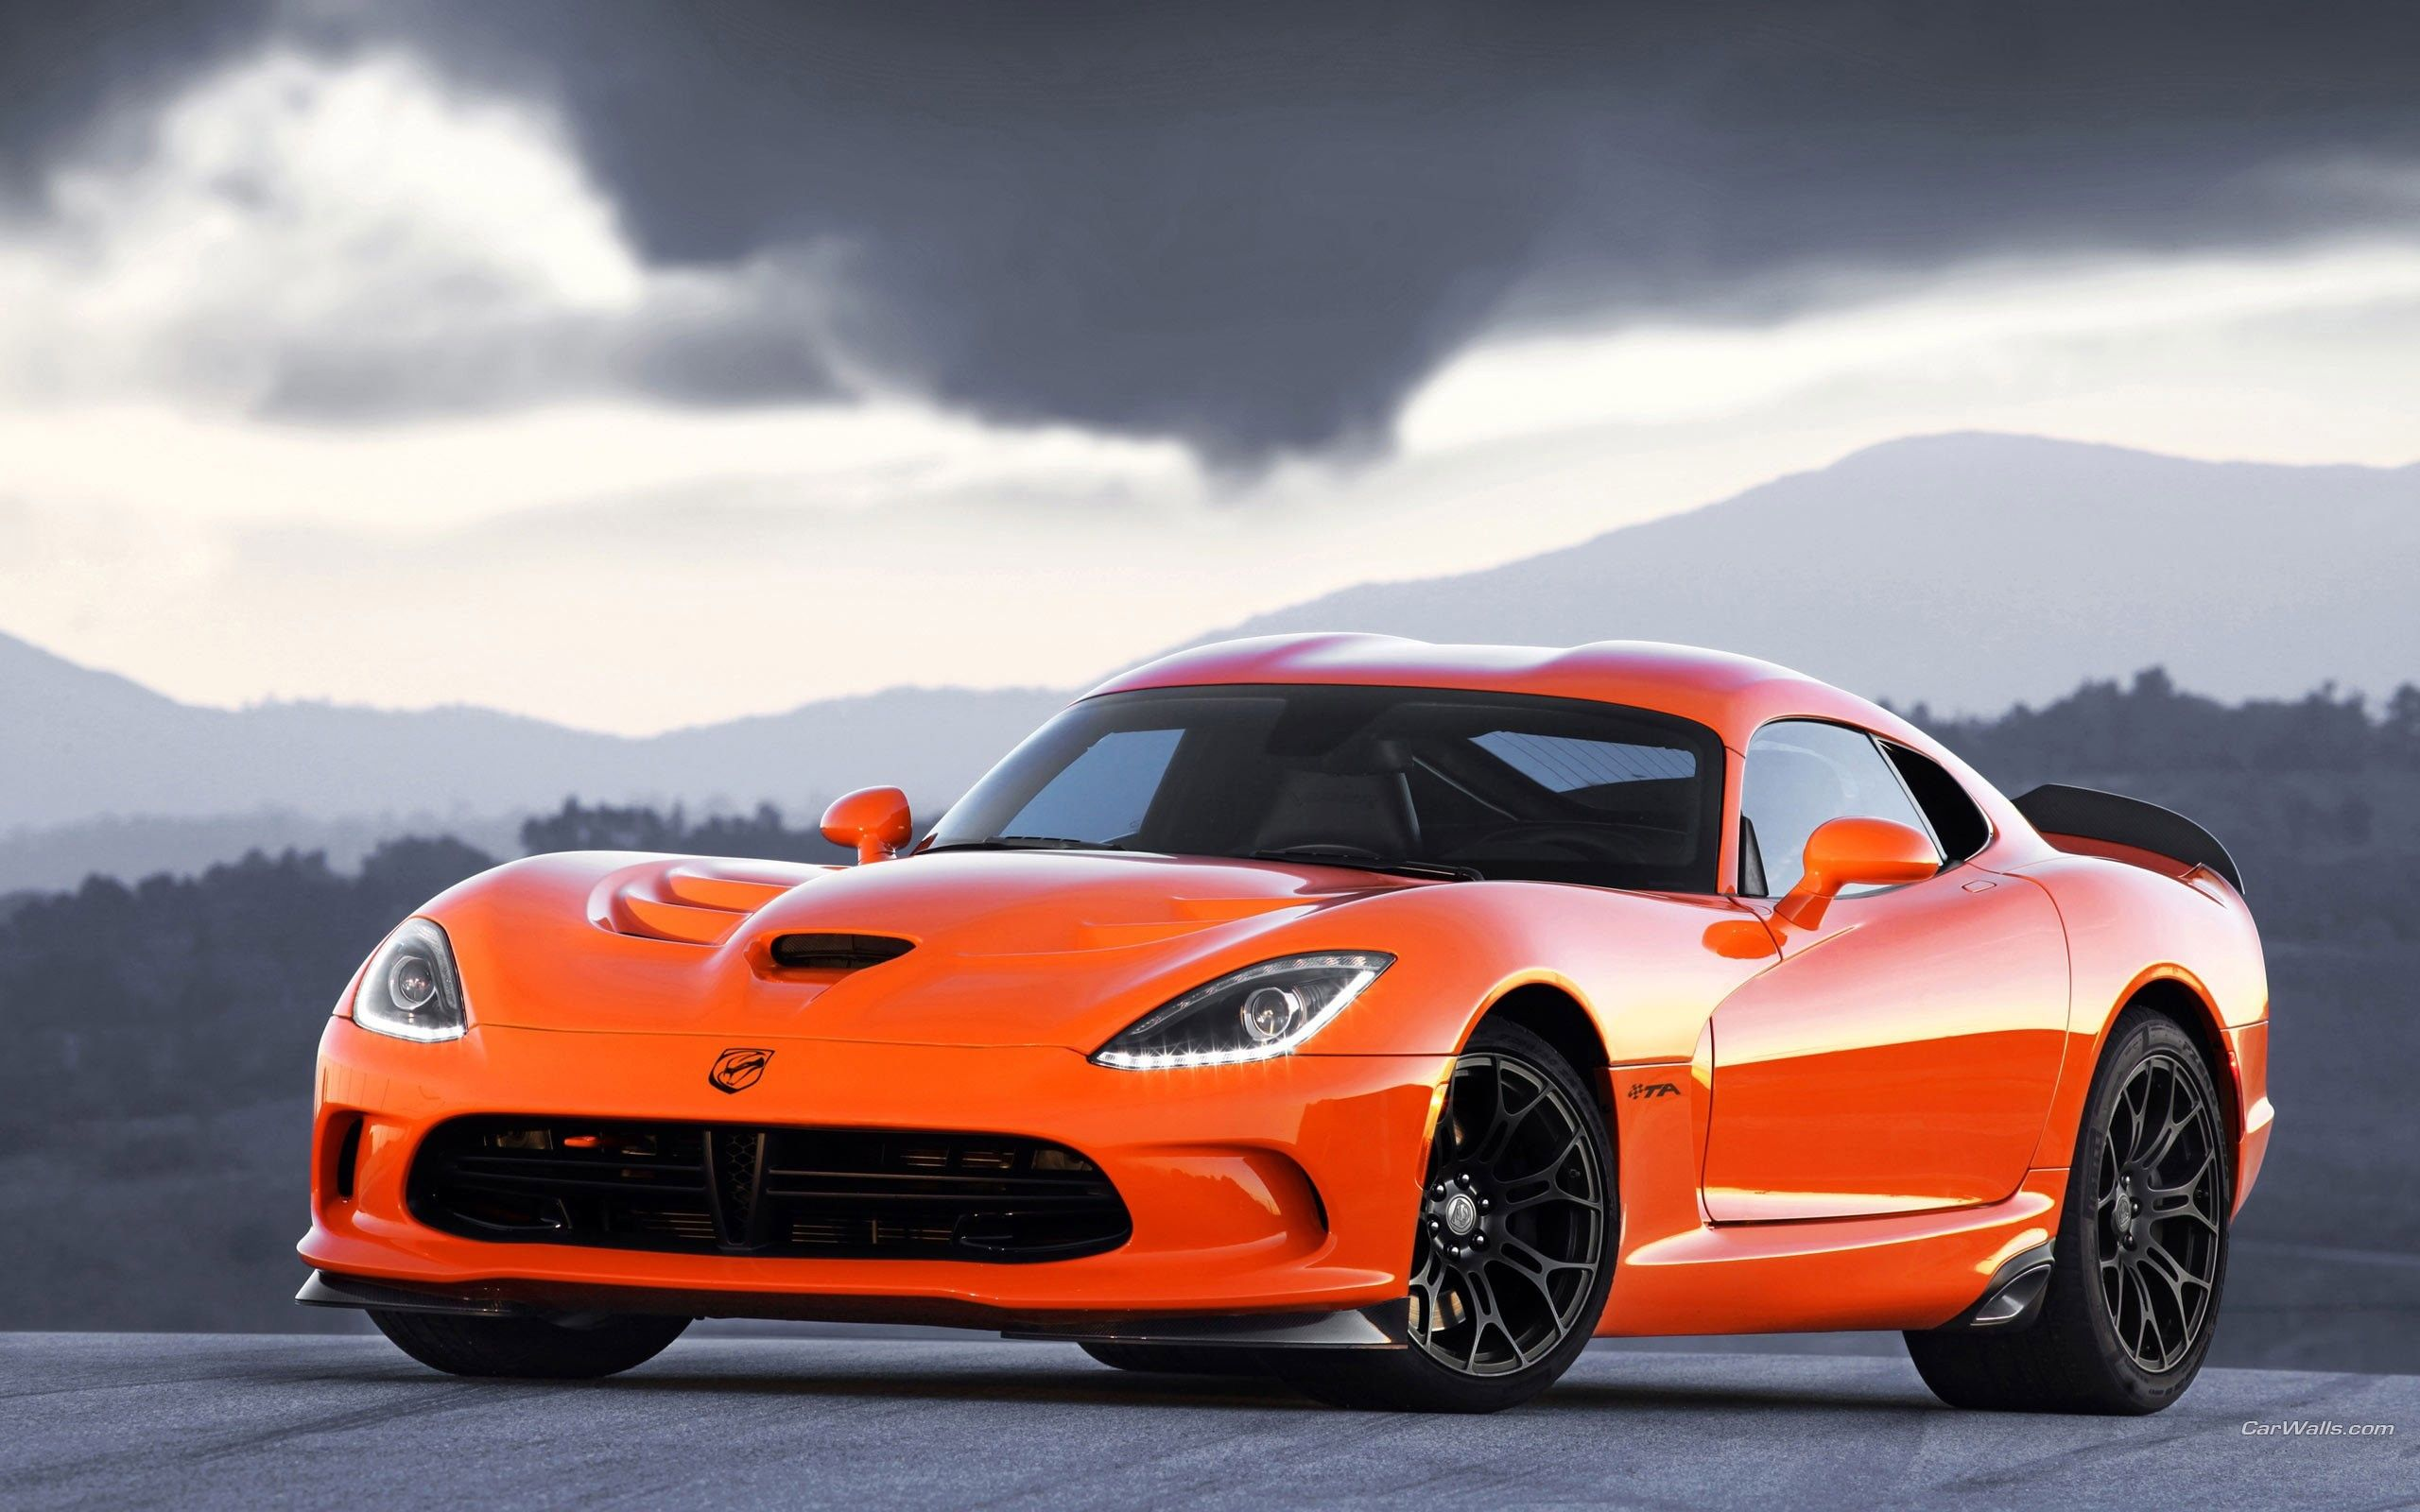 Dodge Viper 2018 Last Viper To Be Made Youtube Intended For Dodge Viper 2019 First Drive Price Performance And Revie Dodge Viper 2016 Dodge Viper Viper Acr